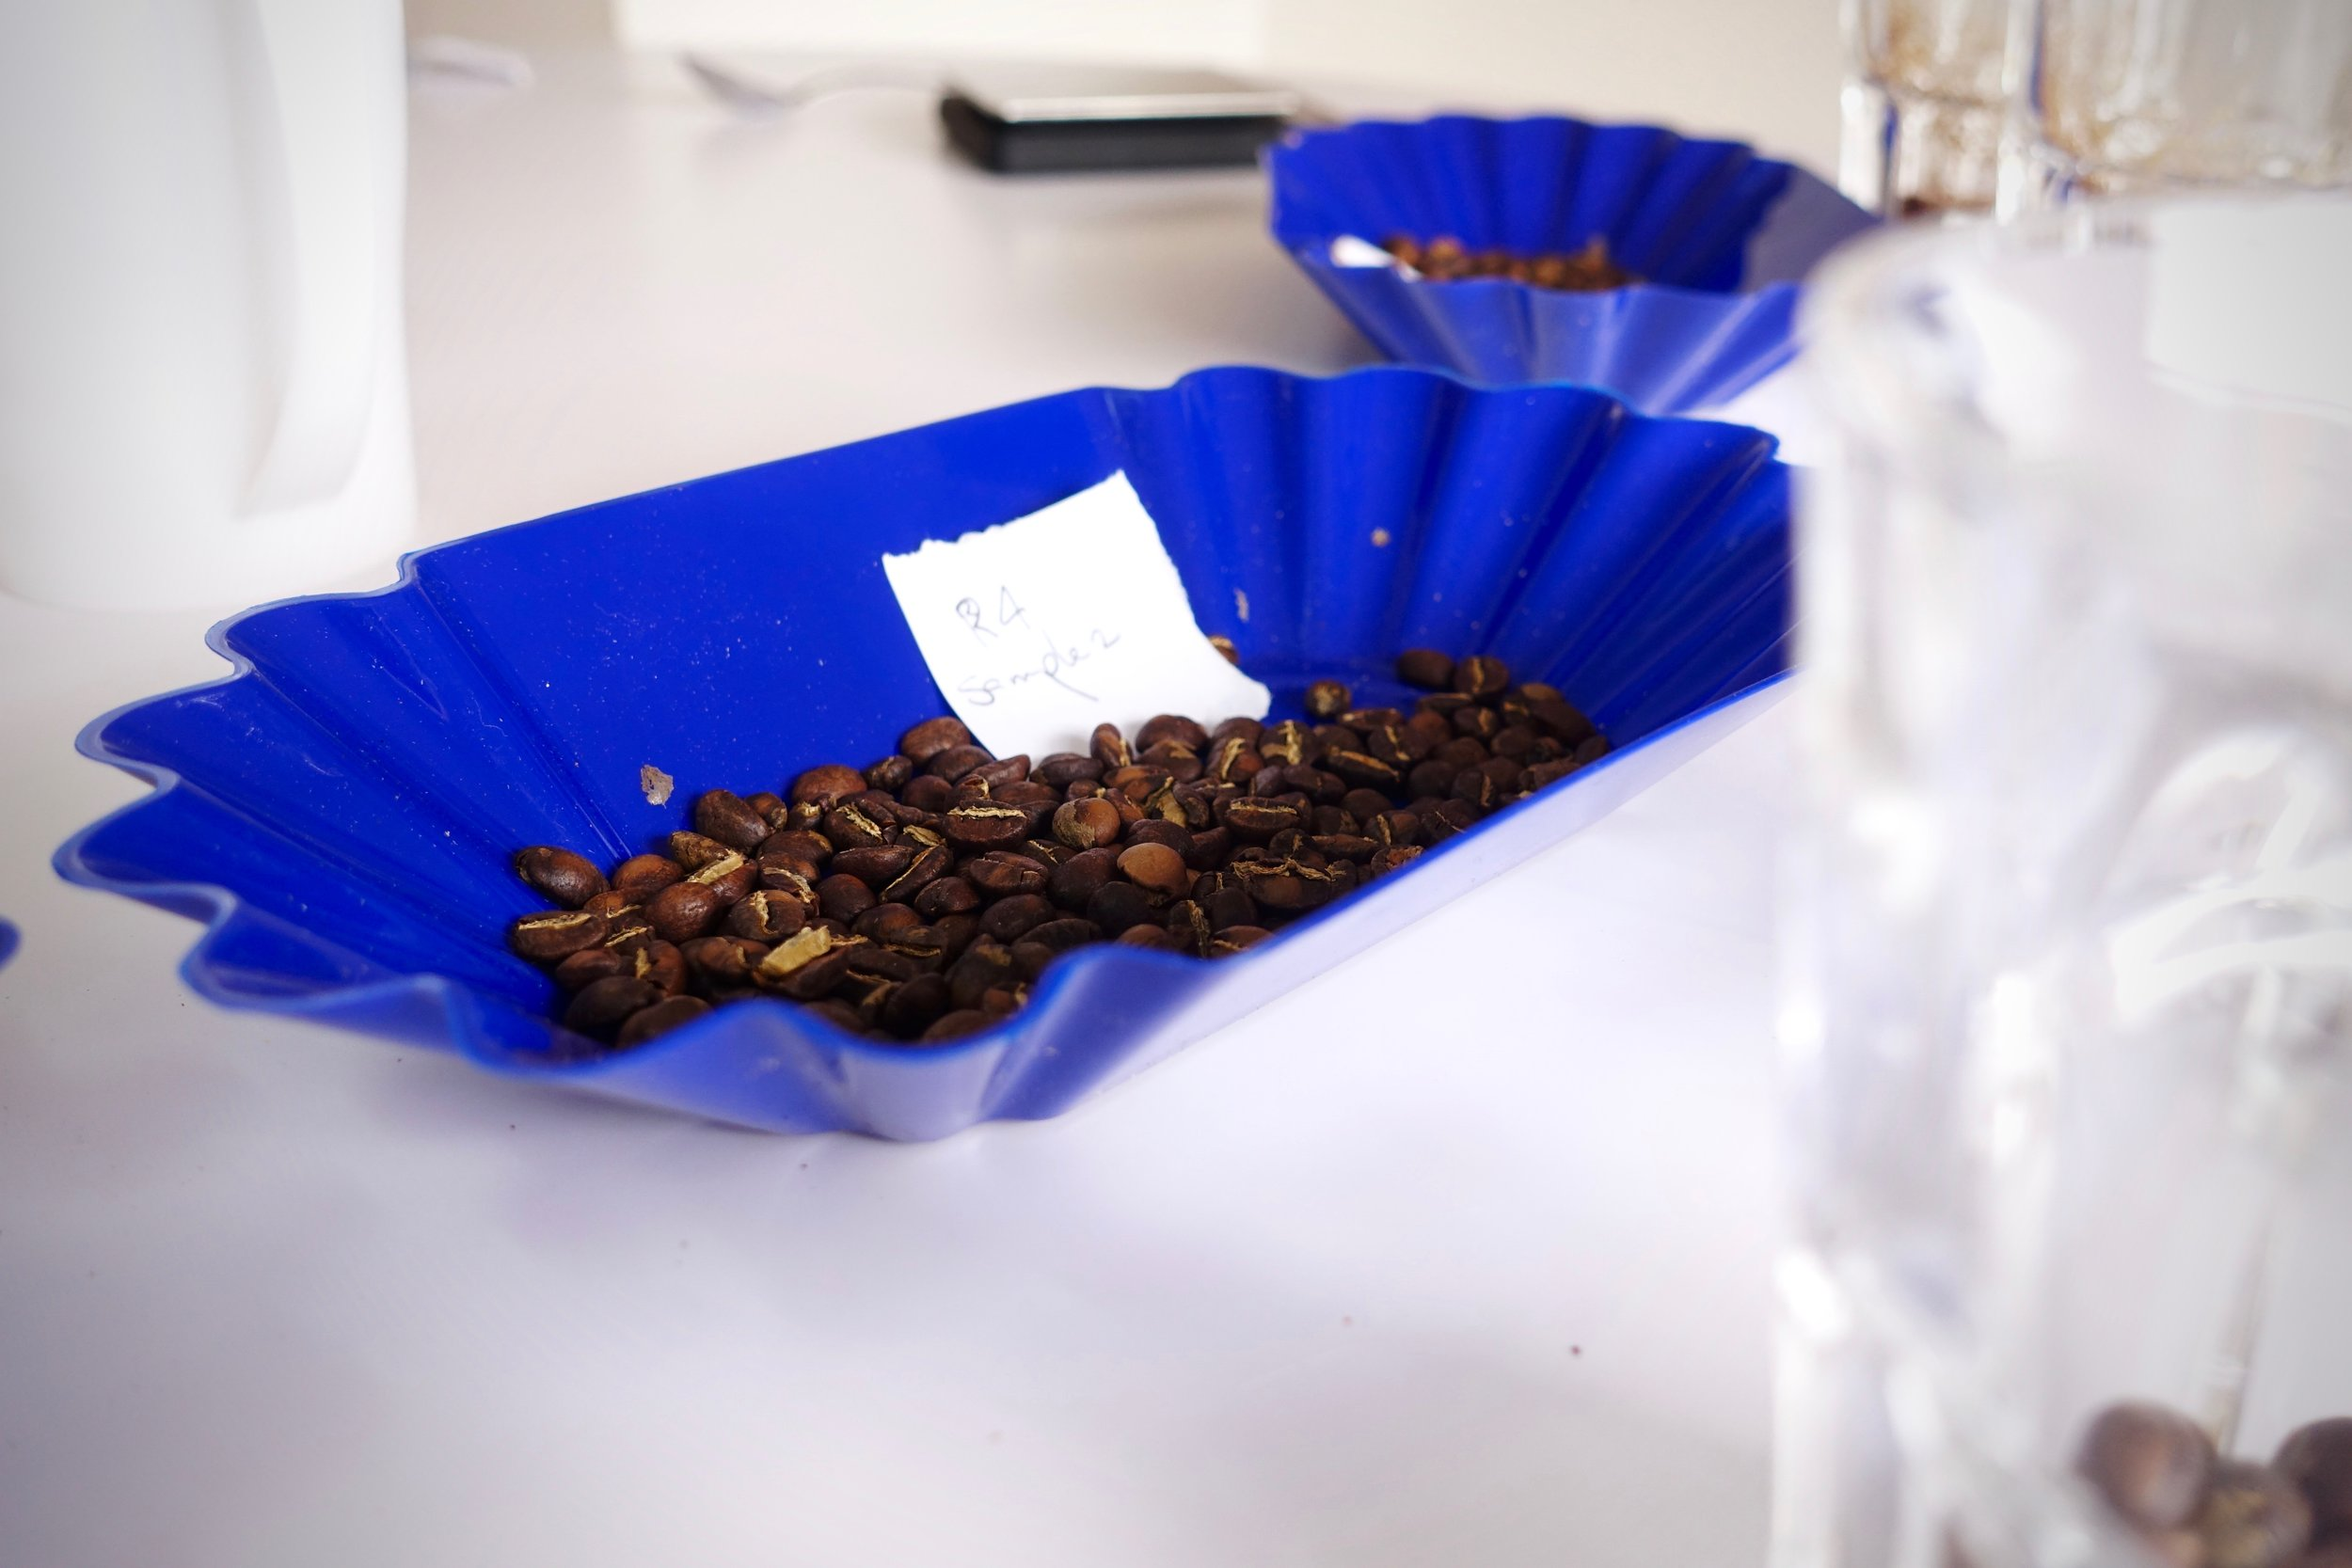 Always an exciting time cupping fresh samples.